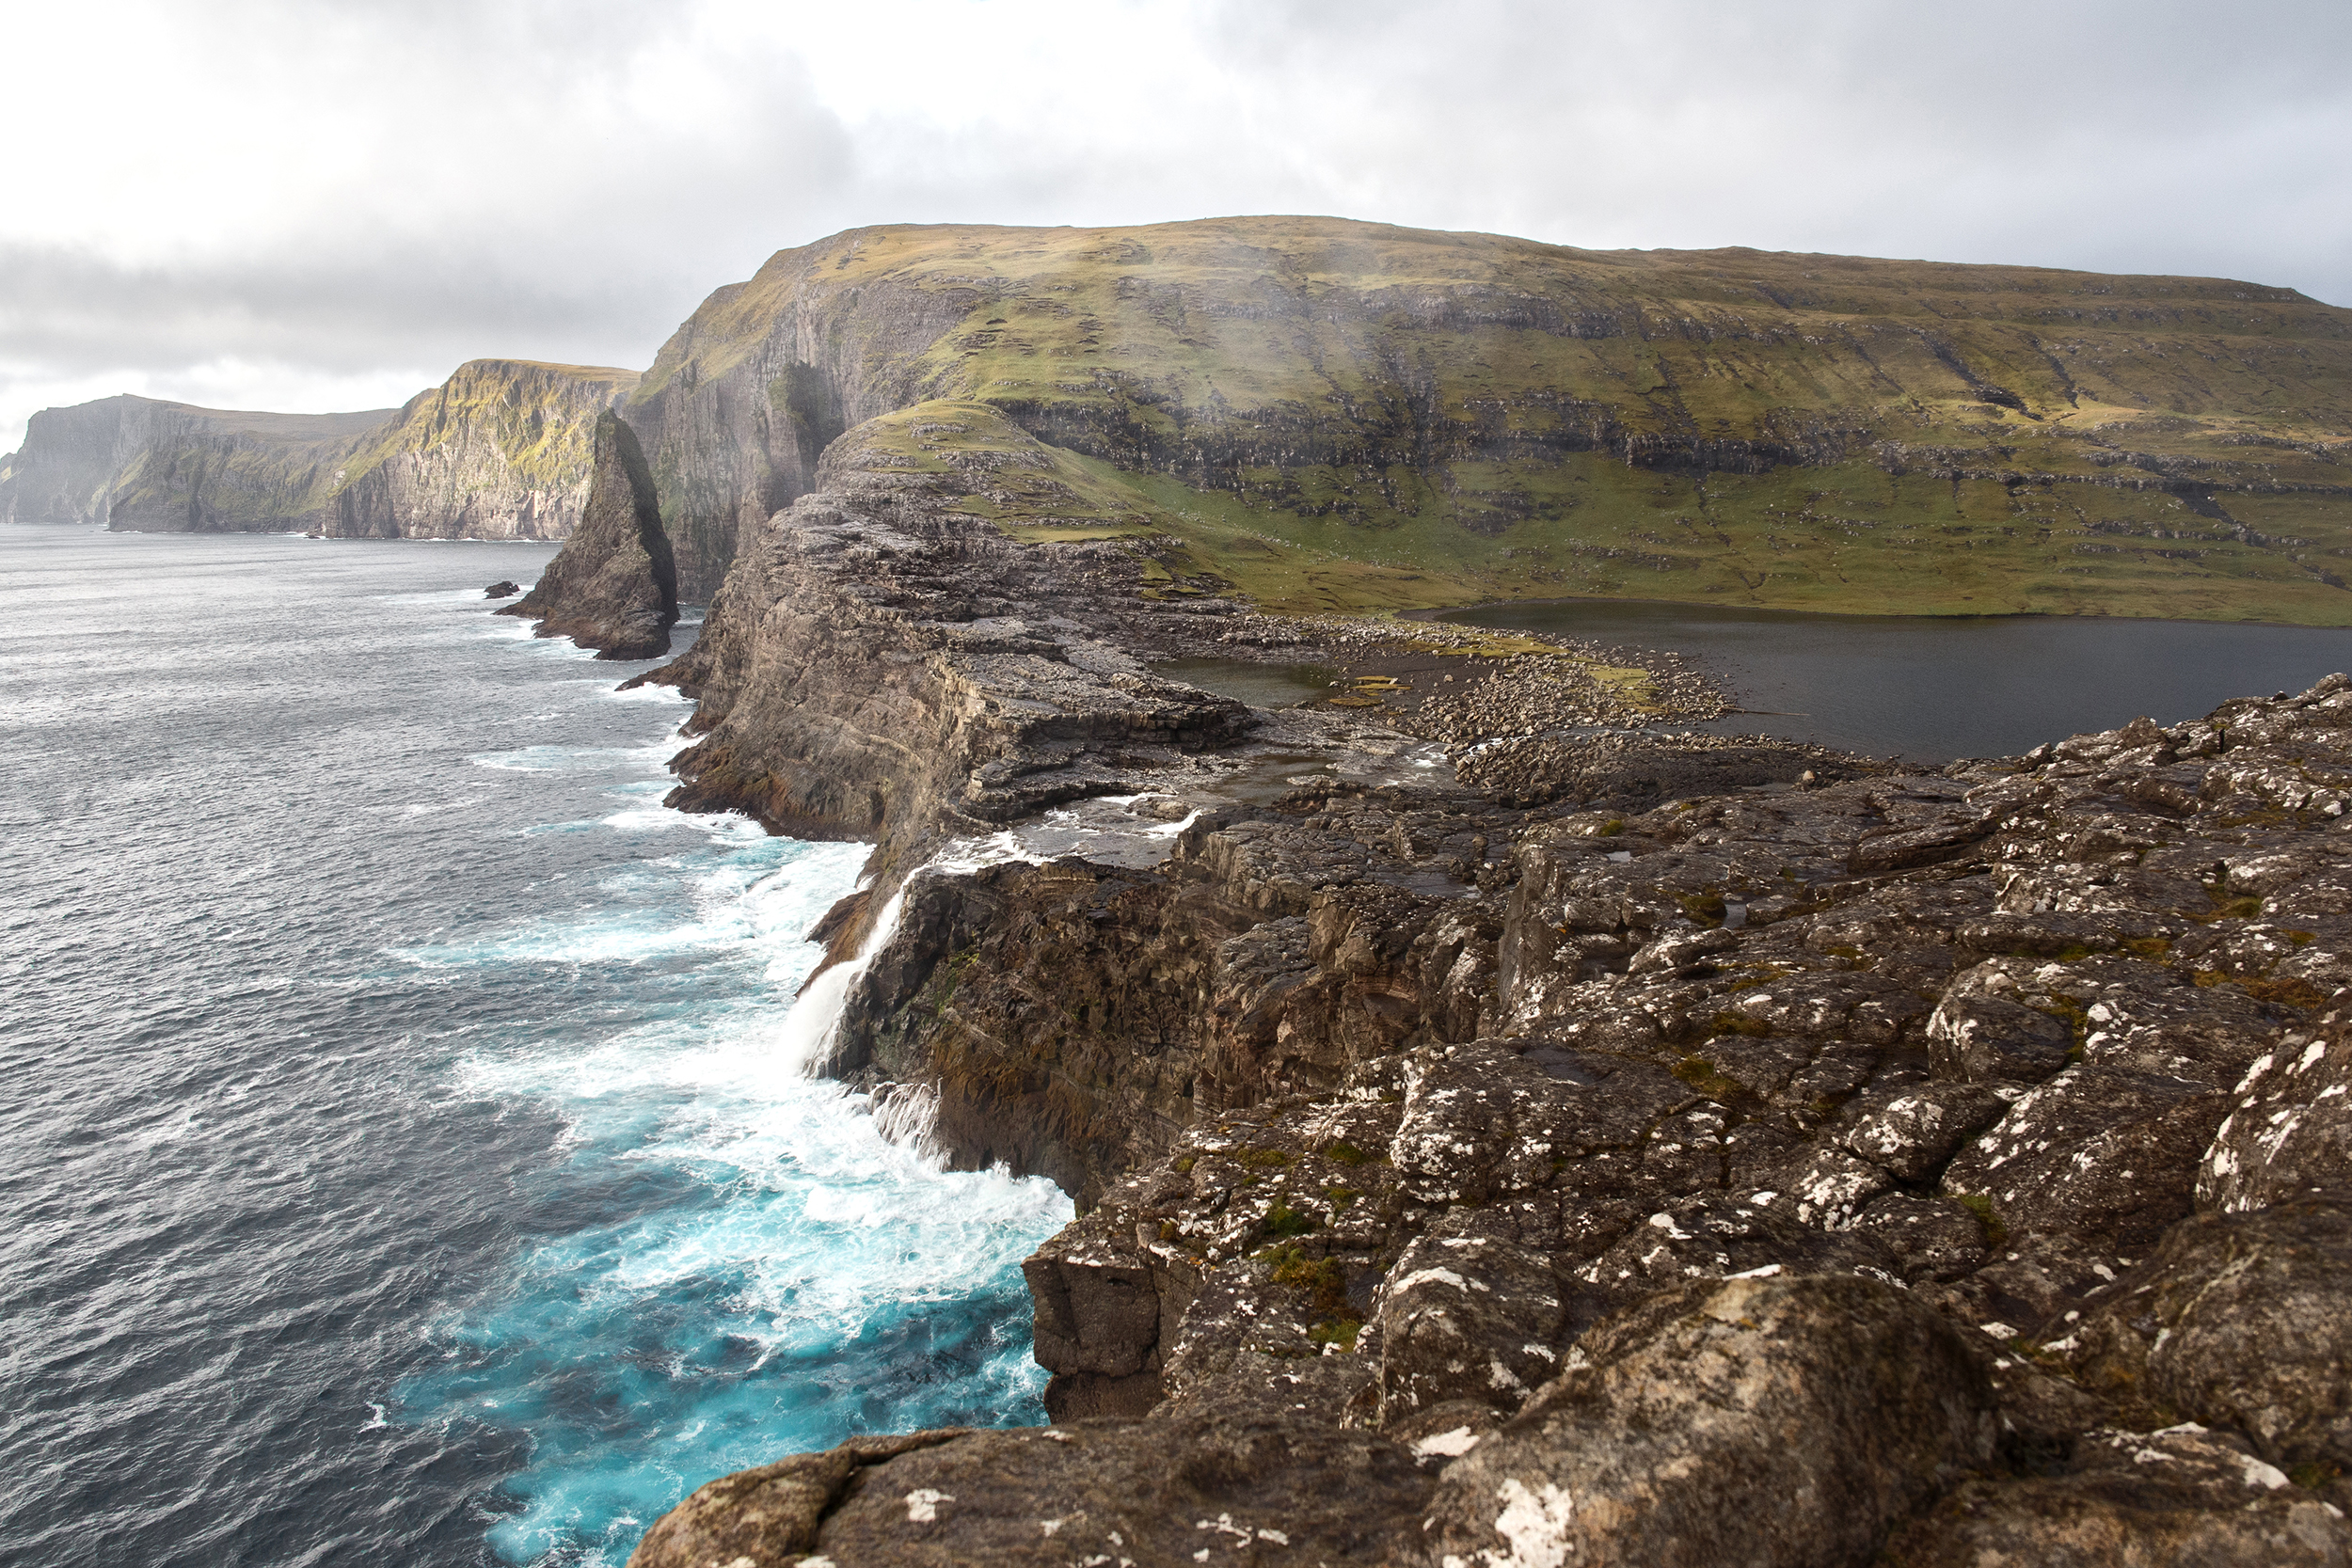 The edge of Sørvágsvatn or Leitisvatn on Vagur in the Faroe Islands